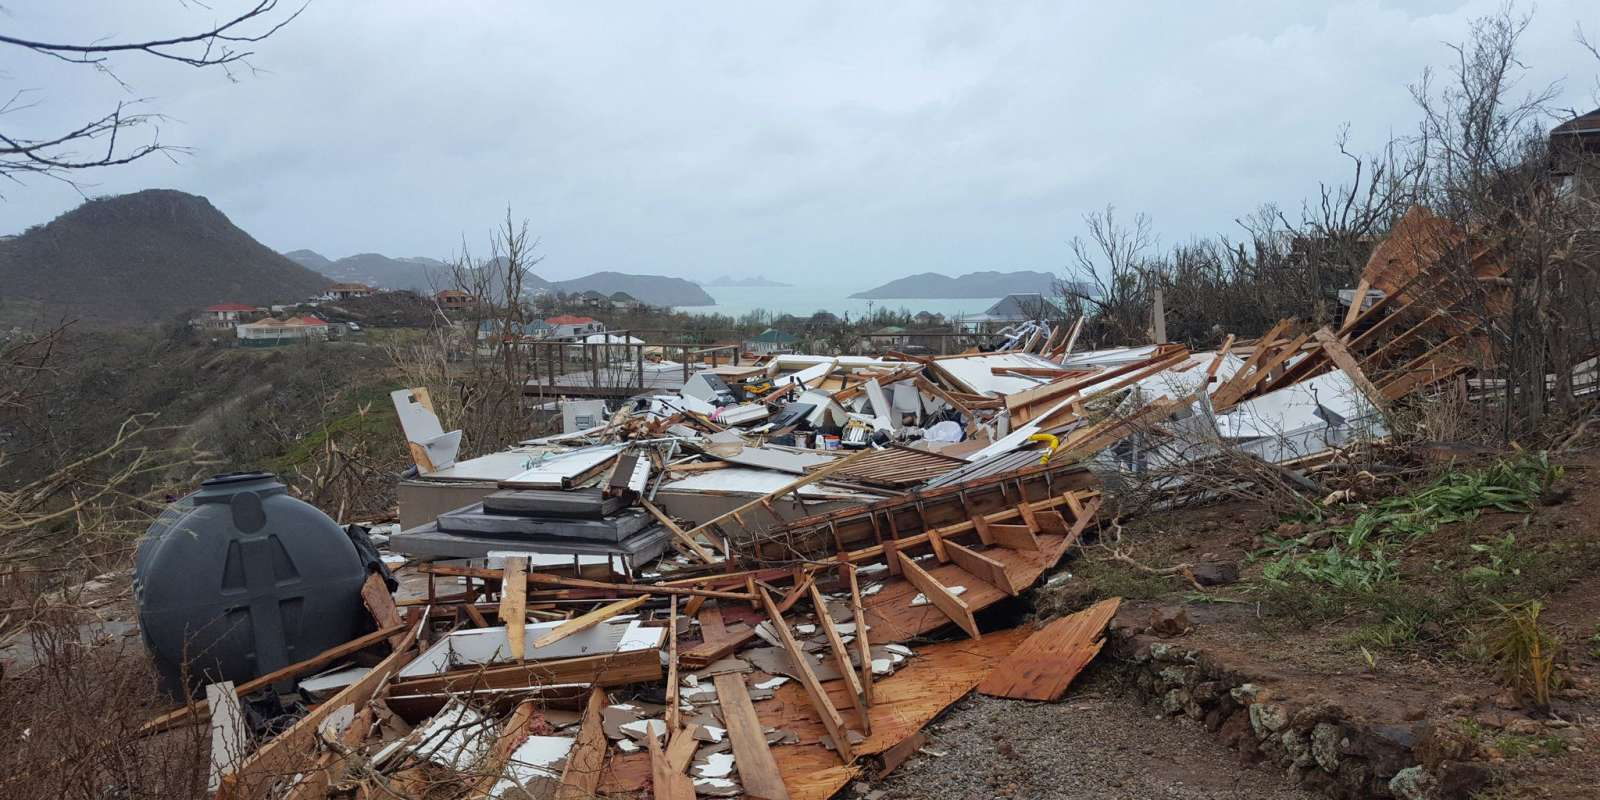 This handout picture released on the Twitter account of Quentin Liou on September 7, 2017 shows a house reduced to rubble on the French administered territory of Saint Barthelemy, after the passage of Hurricane Irma. Powerful Hurricane Irma cut a swathe of deadly destruction as it roared through the Caribbean, claiming at least nine lives and turning the tropical islands of St Martin and Barbuda into mountains of rubble. - RESTRICTED TO EDITORIAL USE - MANDATORY CREDIT